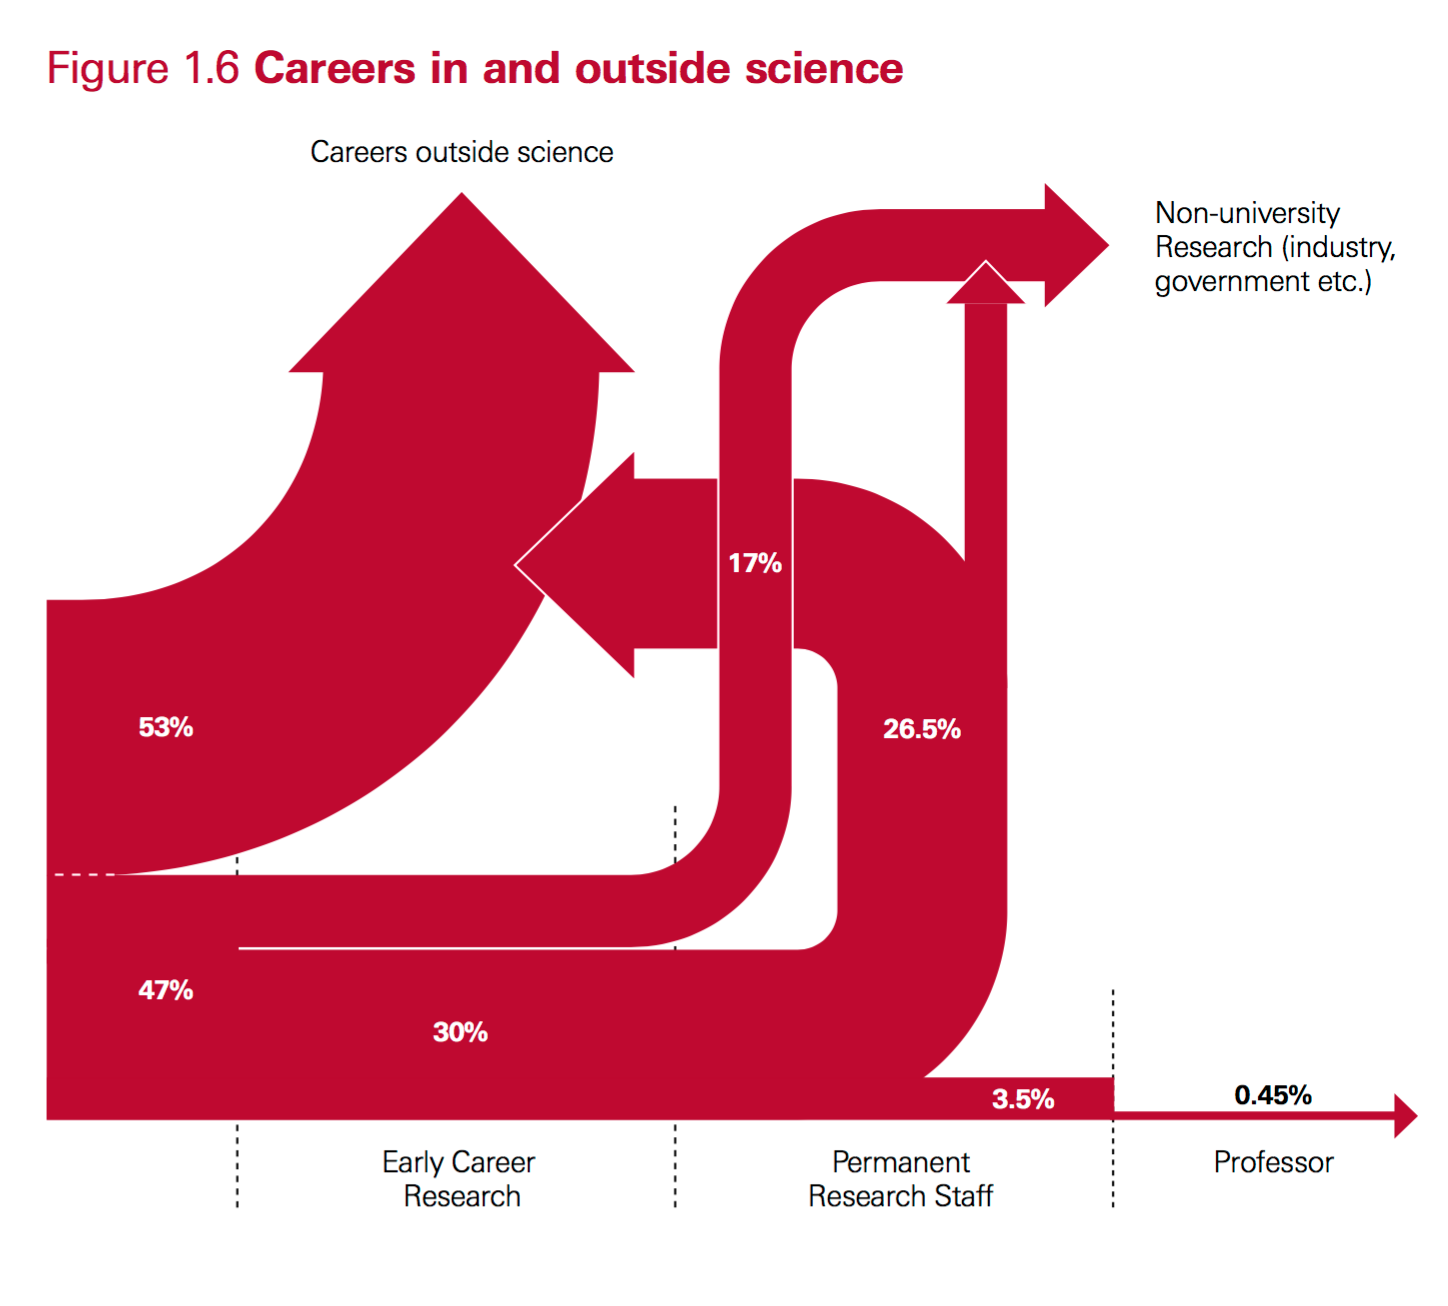 https://royalsociety.org/topics-policy/publications/2010/scientific-century/